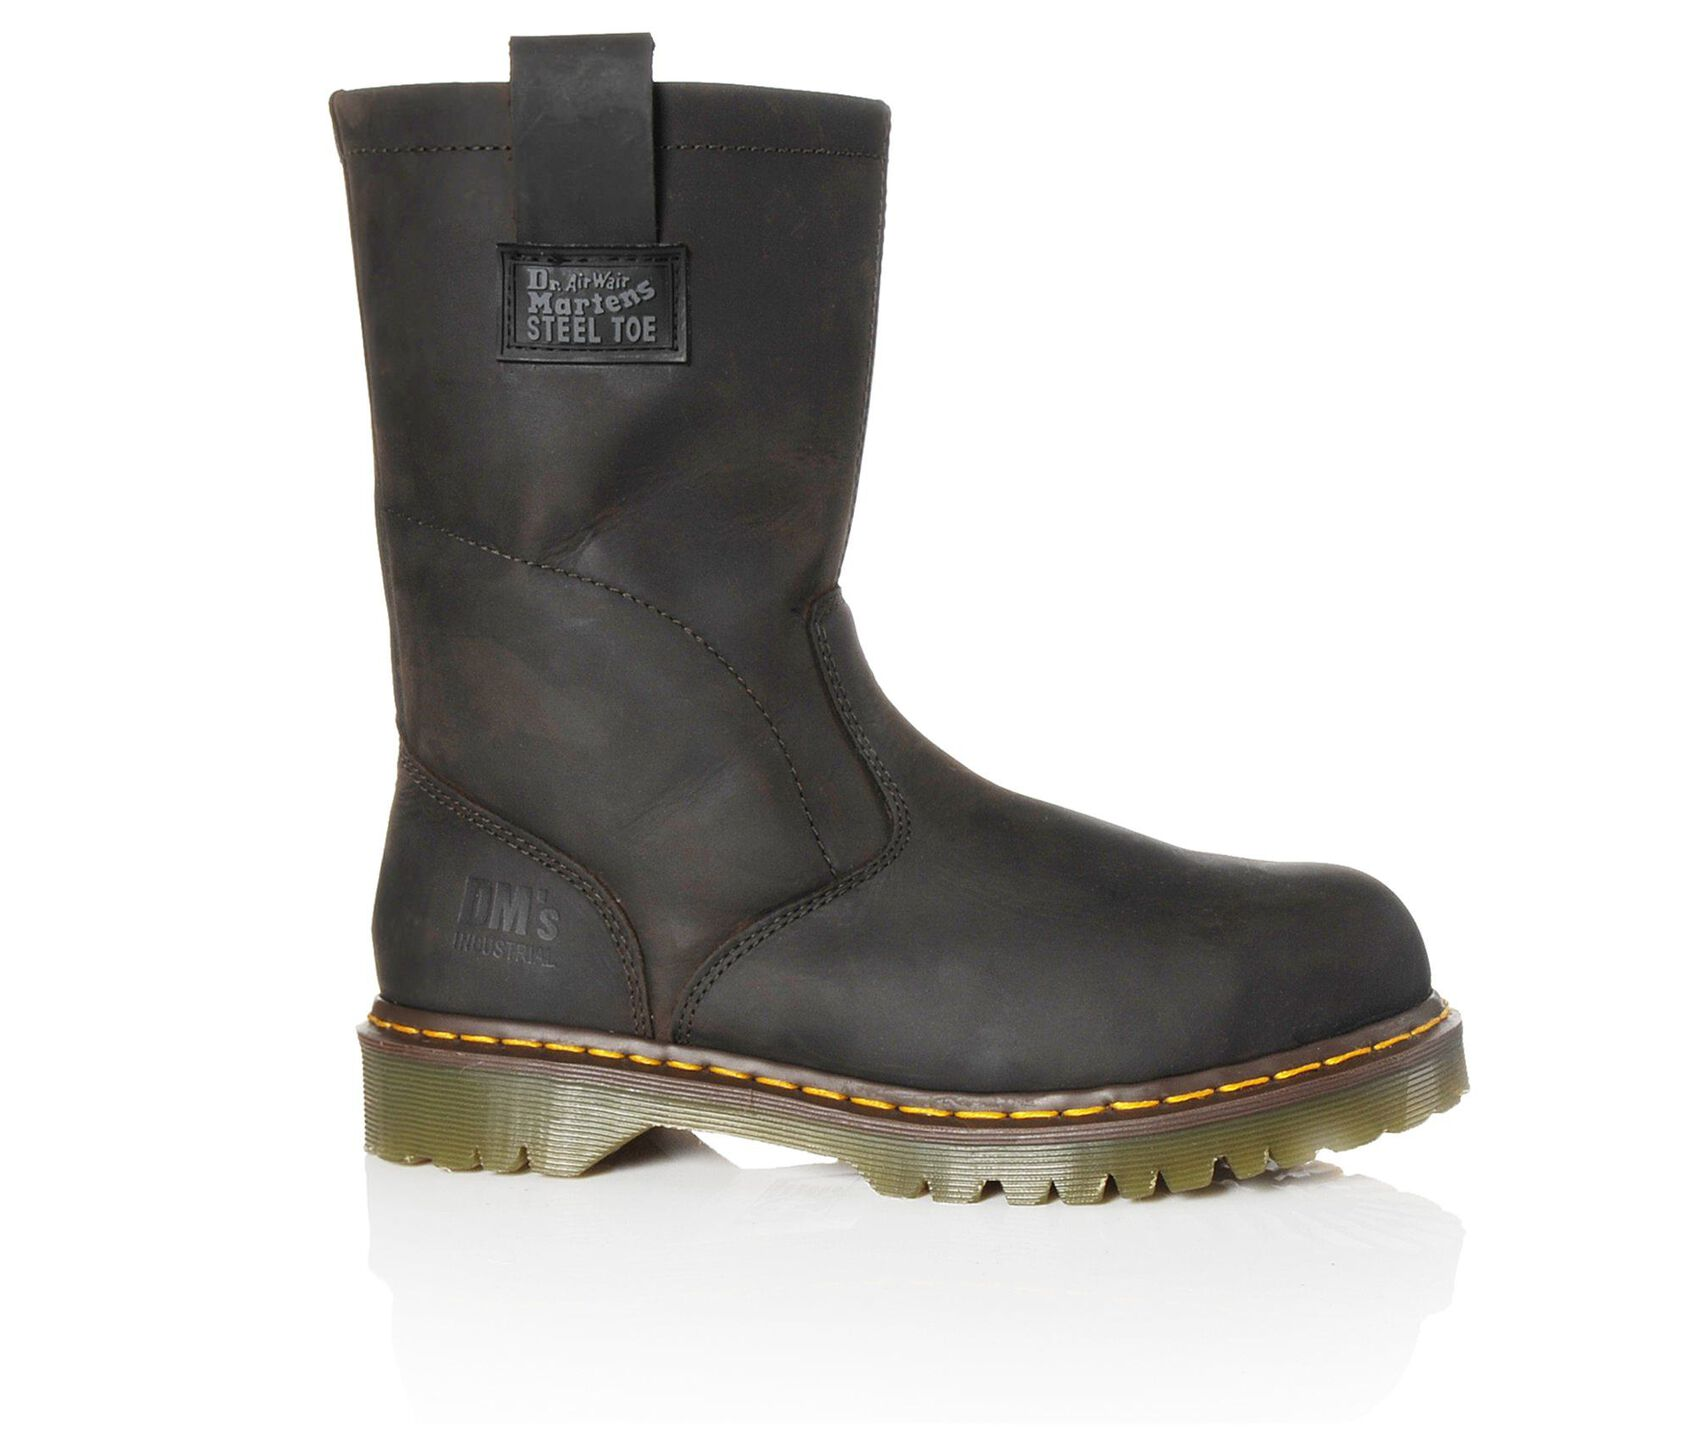 c7b84a6e40a Men's Dr. Martens Industrial Icon Wellington 2295 Steel Toe Work Boots